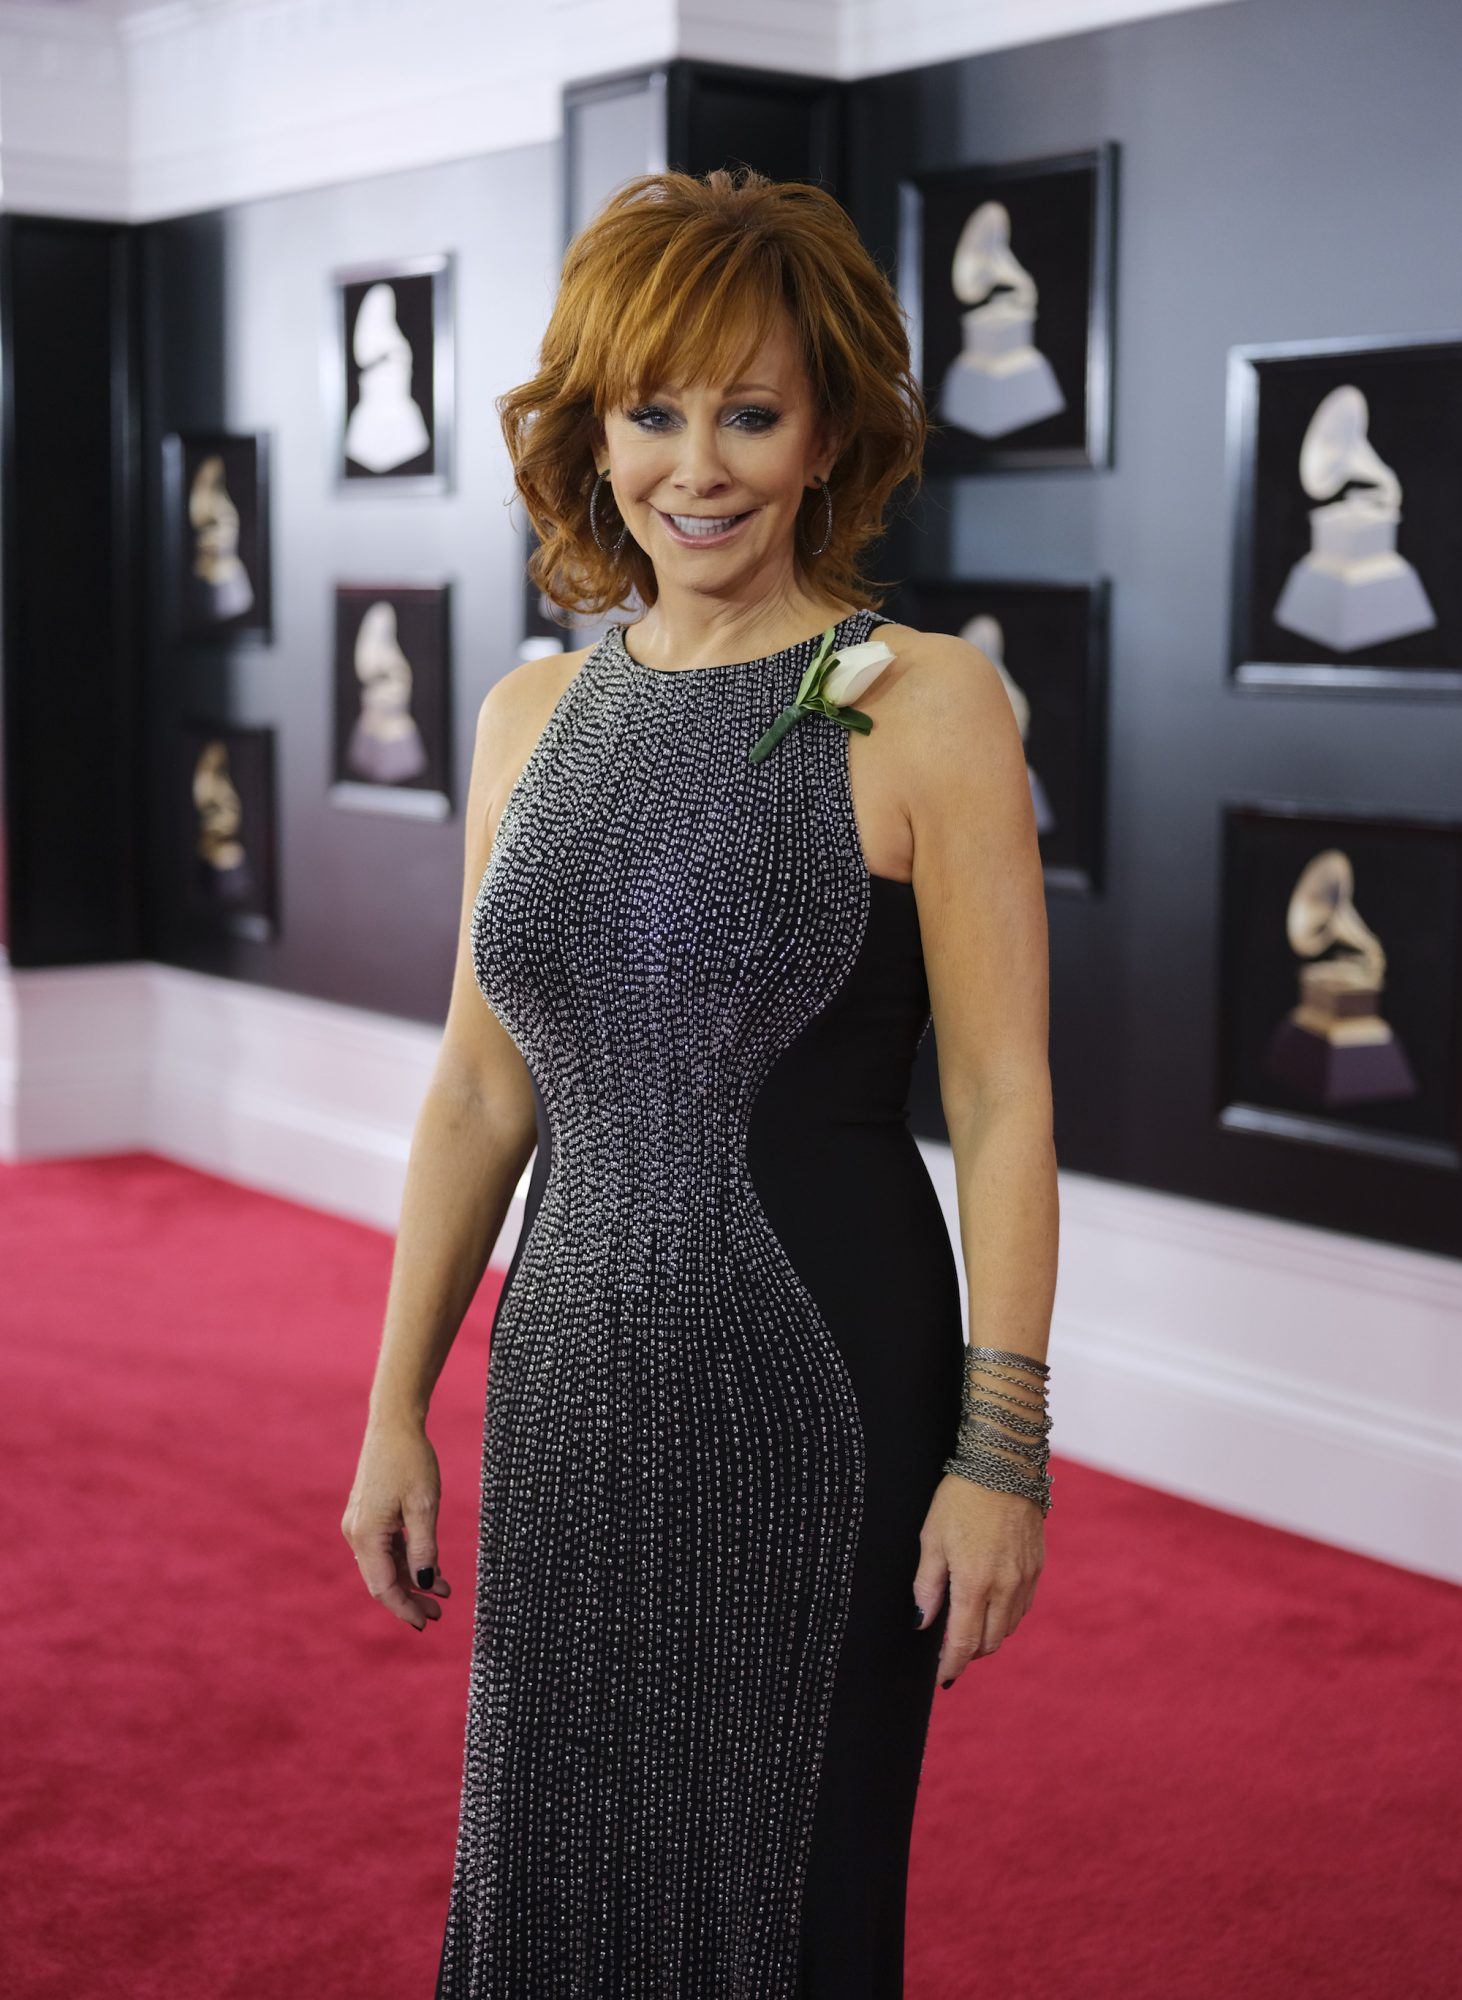 Reba McEntire's Latest Gig Is Evidence She's a Country Music Legend